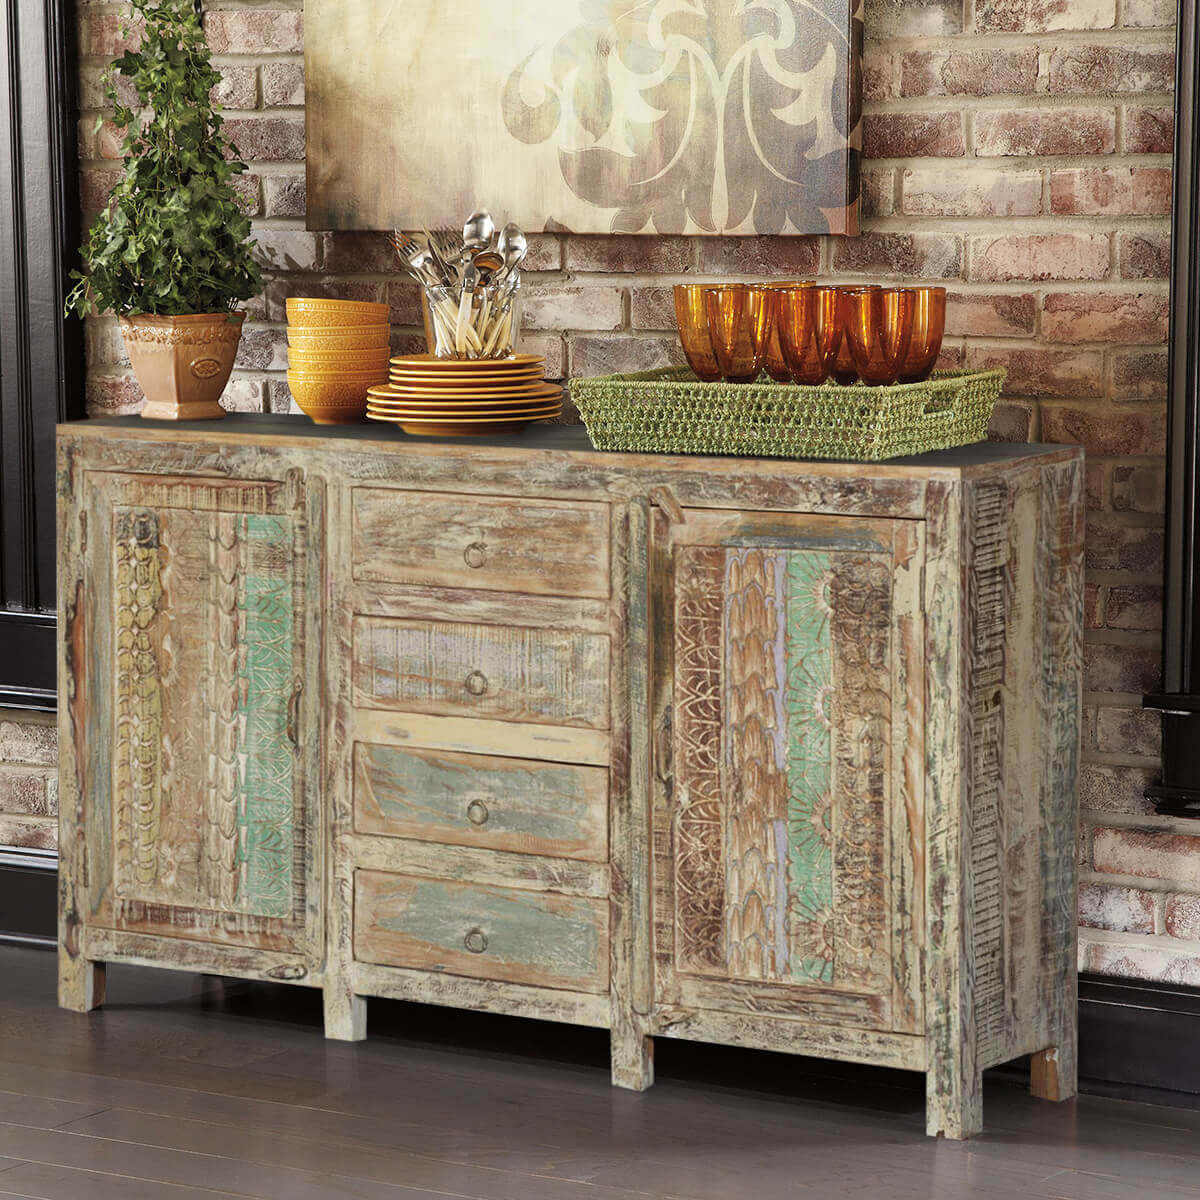 Frosted Rustic Reclaimed Wood Handcrafted 4 Drawer Large Sideboard